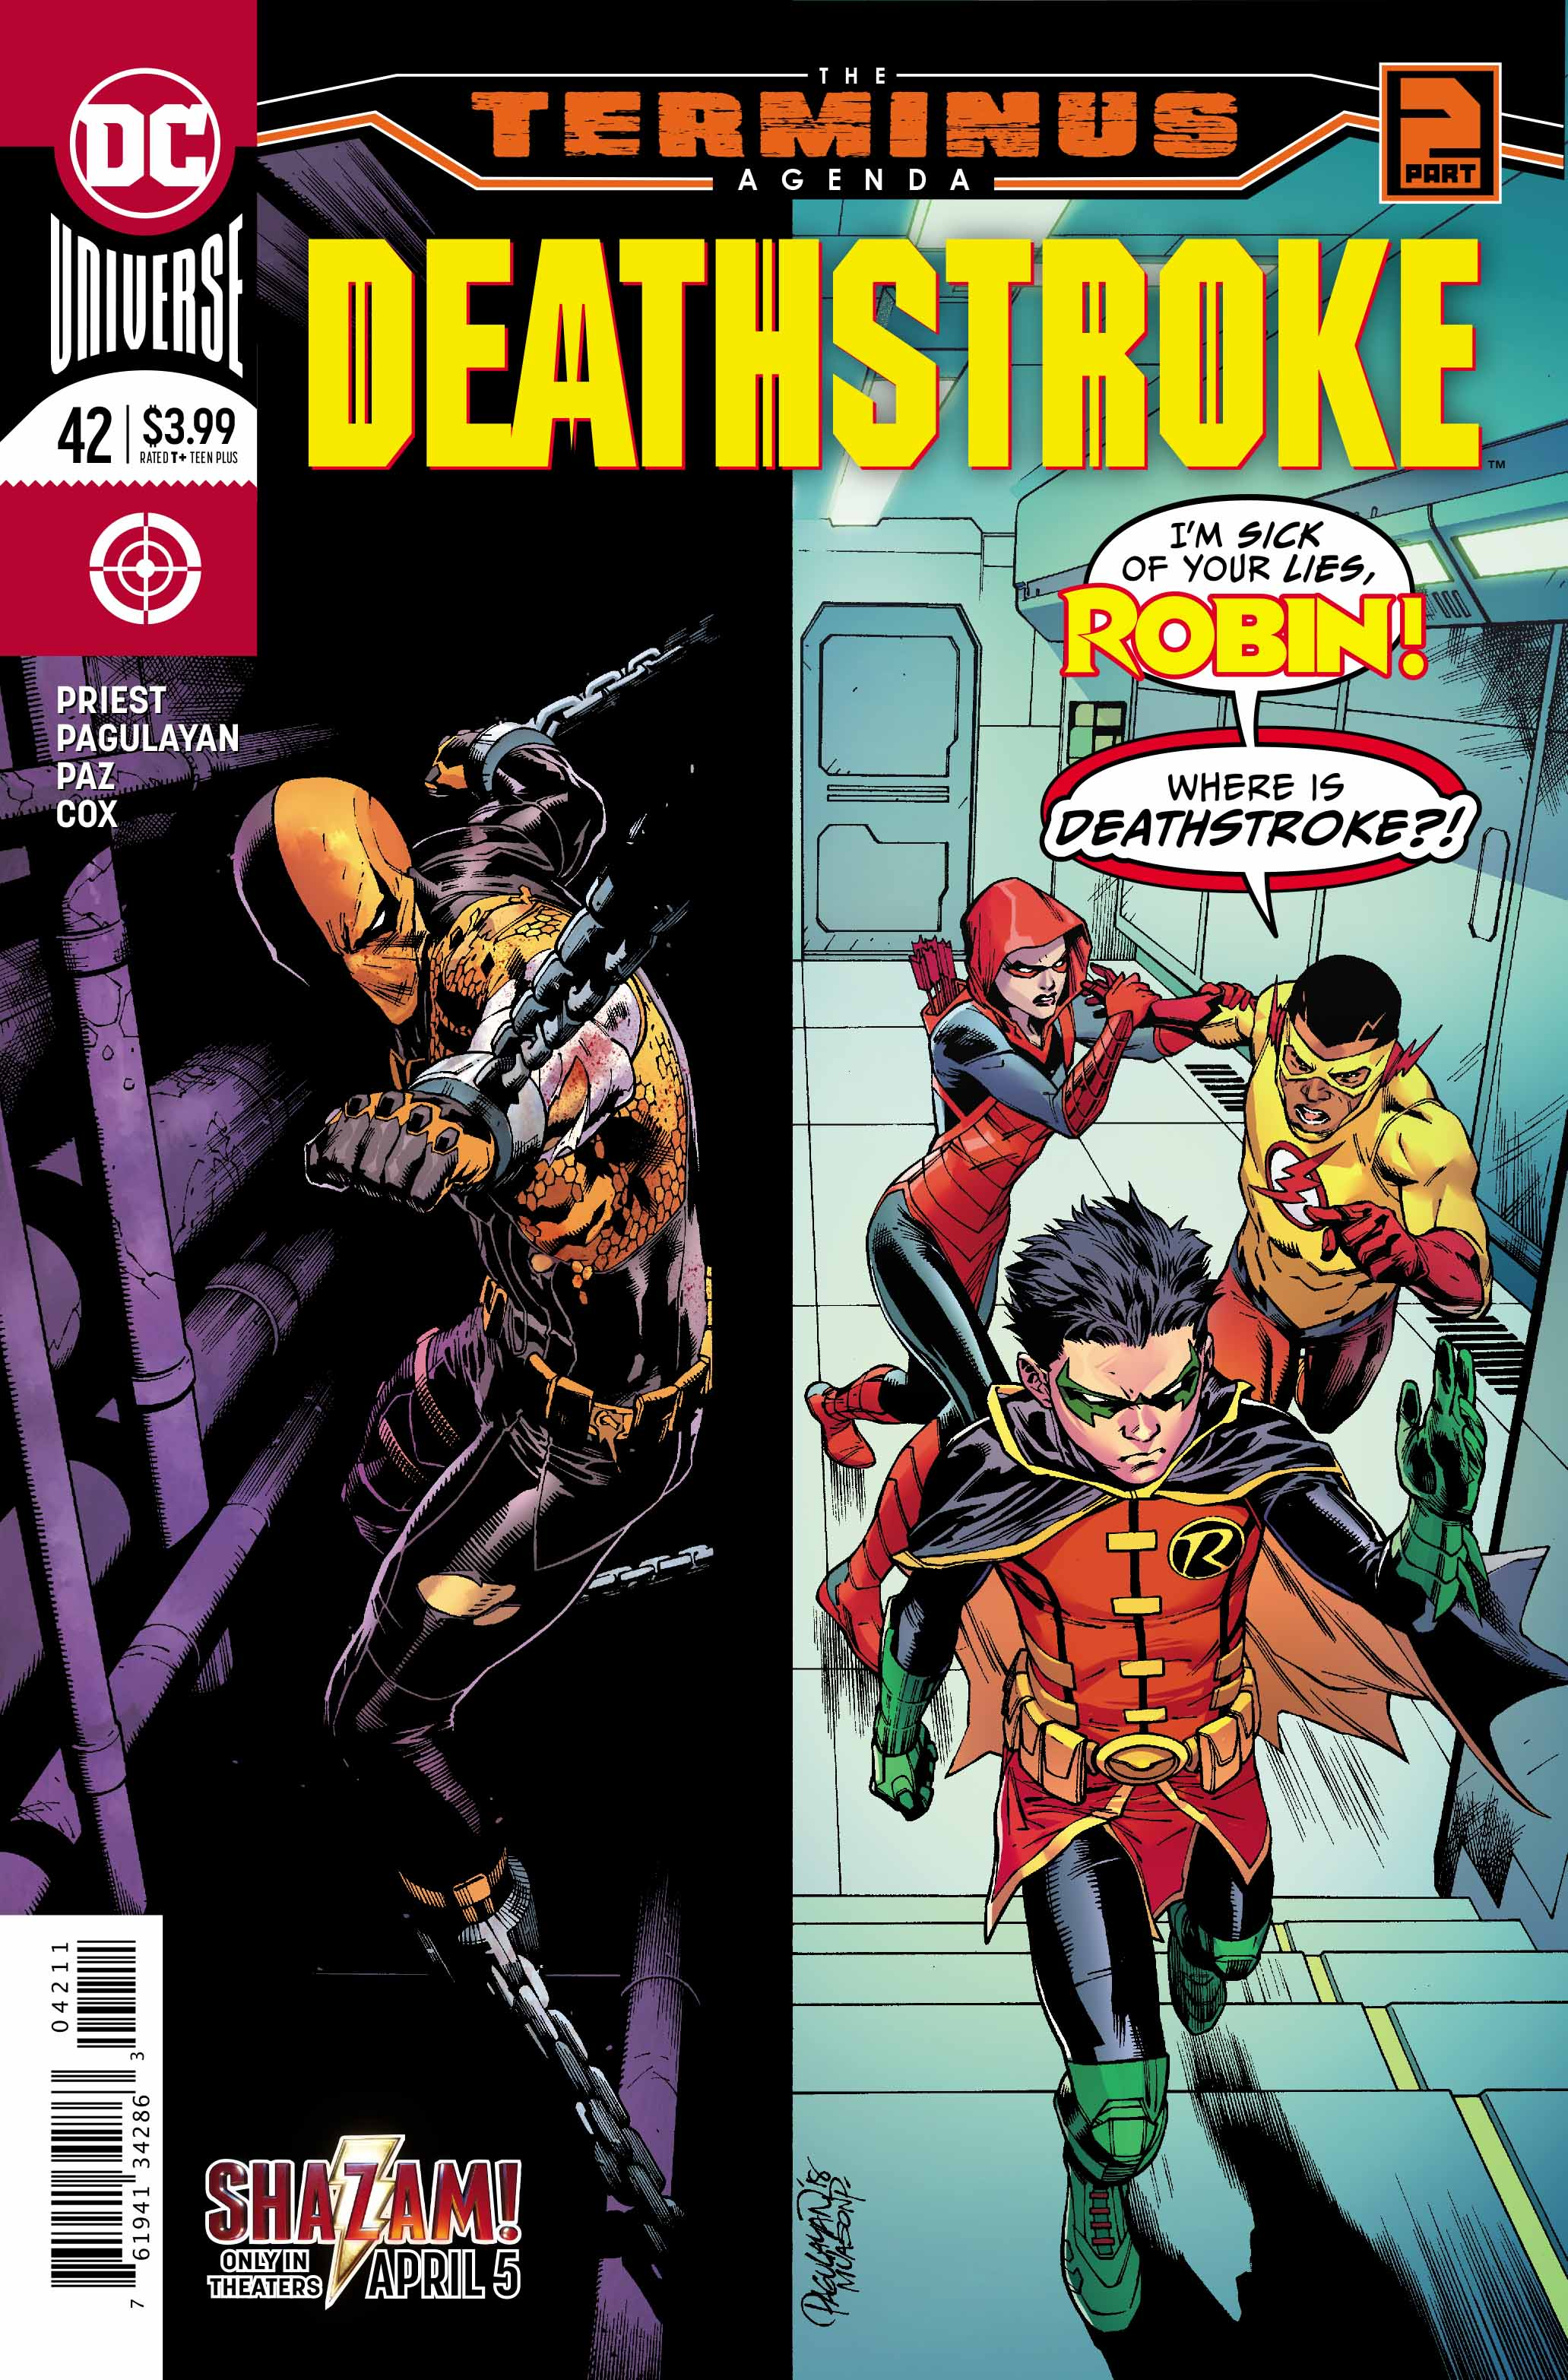 Deathstroke #42 Review